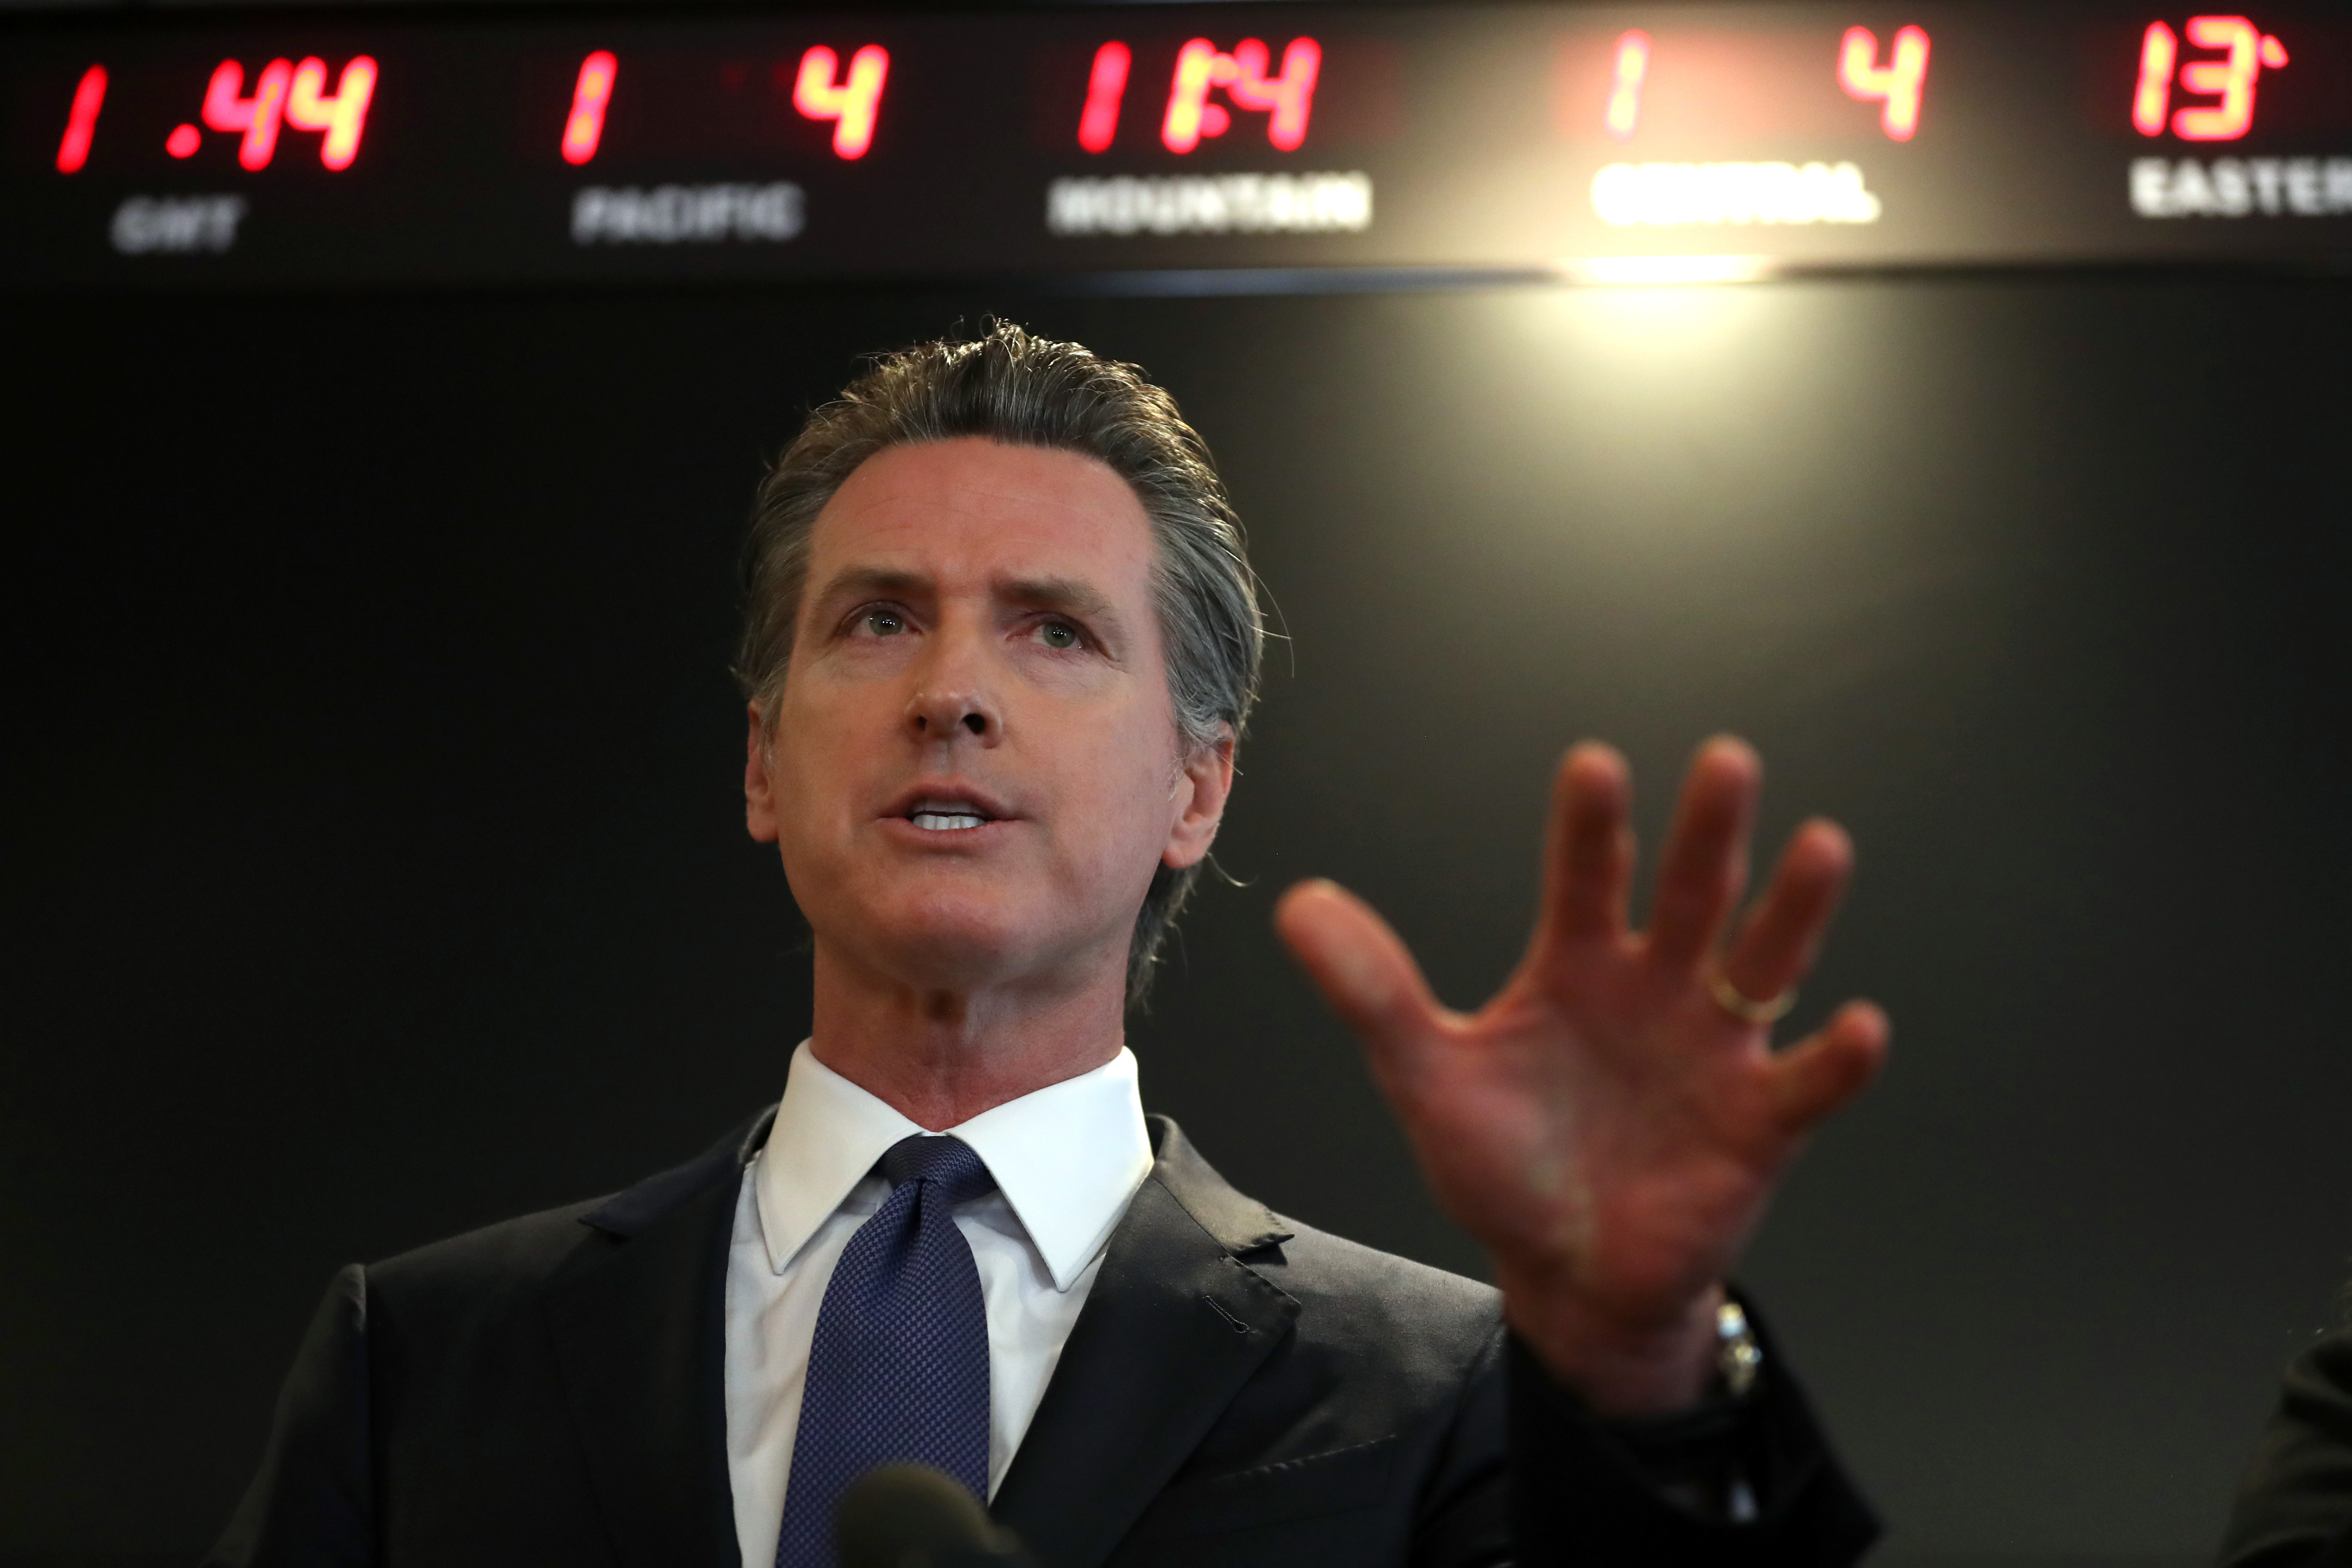 A low-angle photo of a man in a suit speaking with one hand upraised in an emphatic gesture.